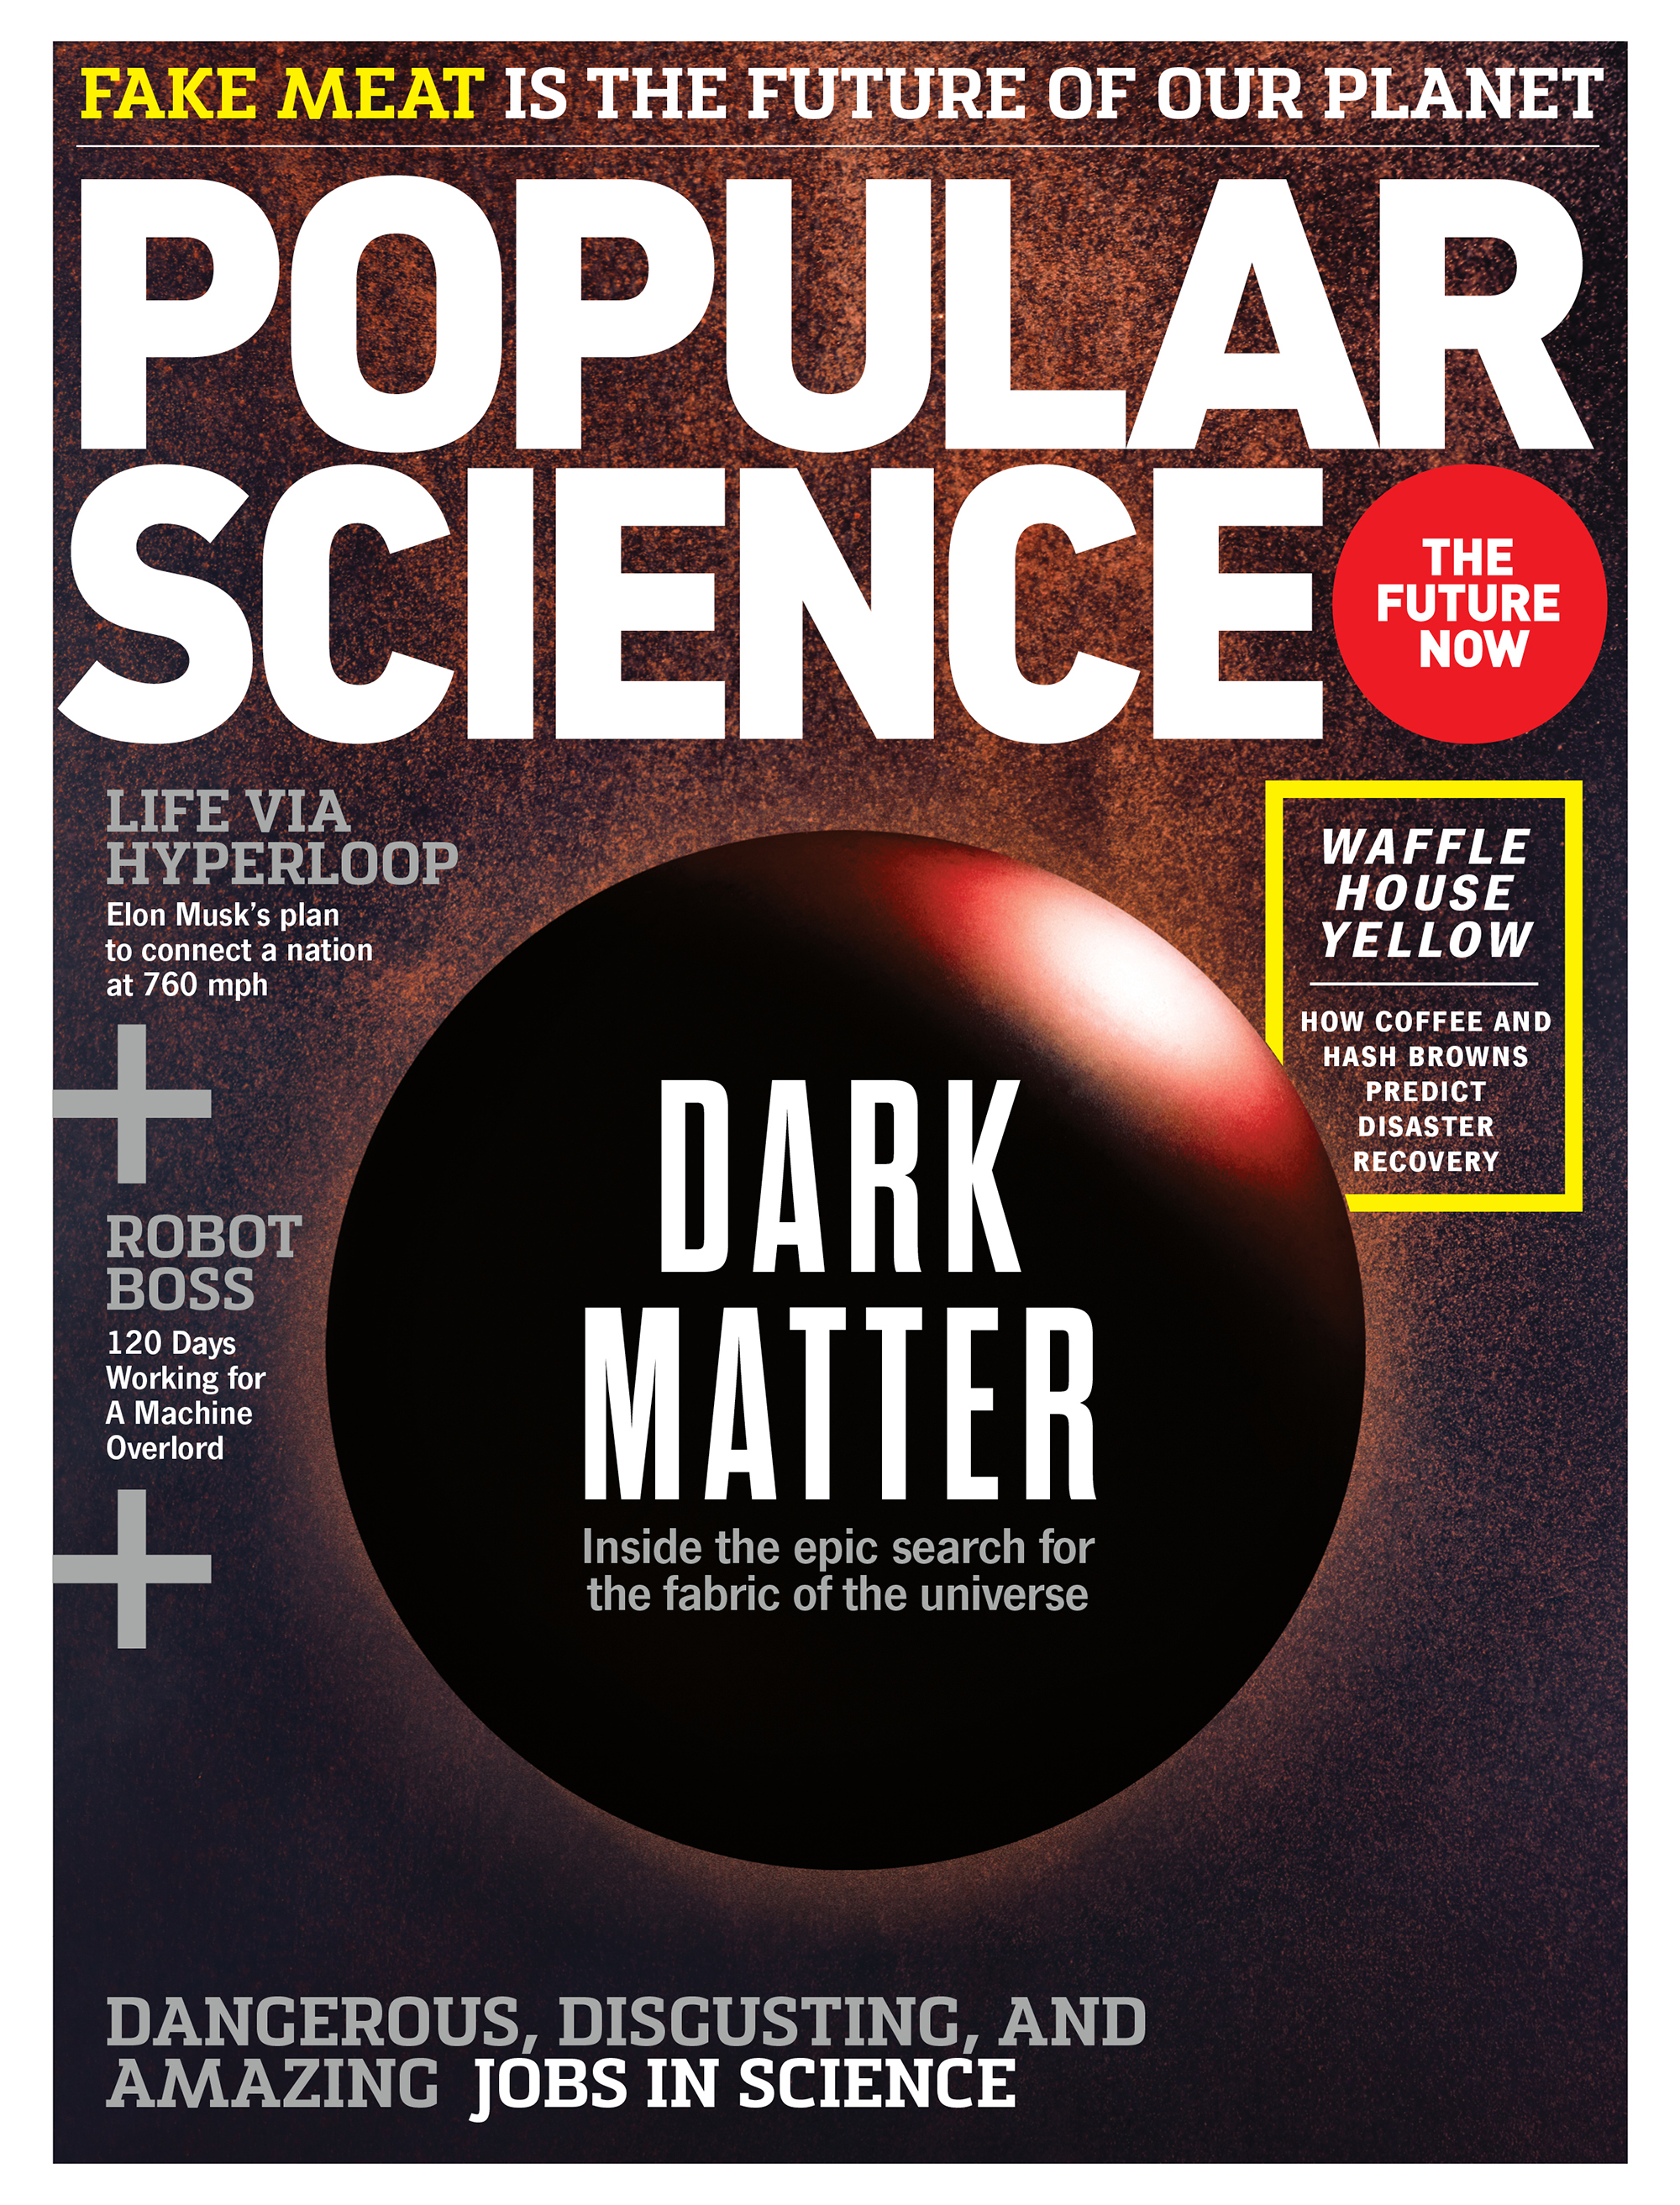 science magazine popular subscription deal stretchingabuckblog coupon purchase code today